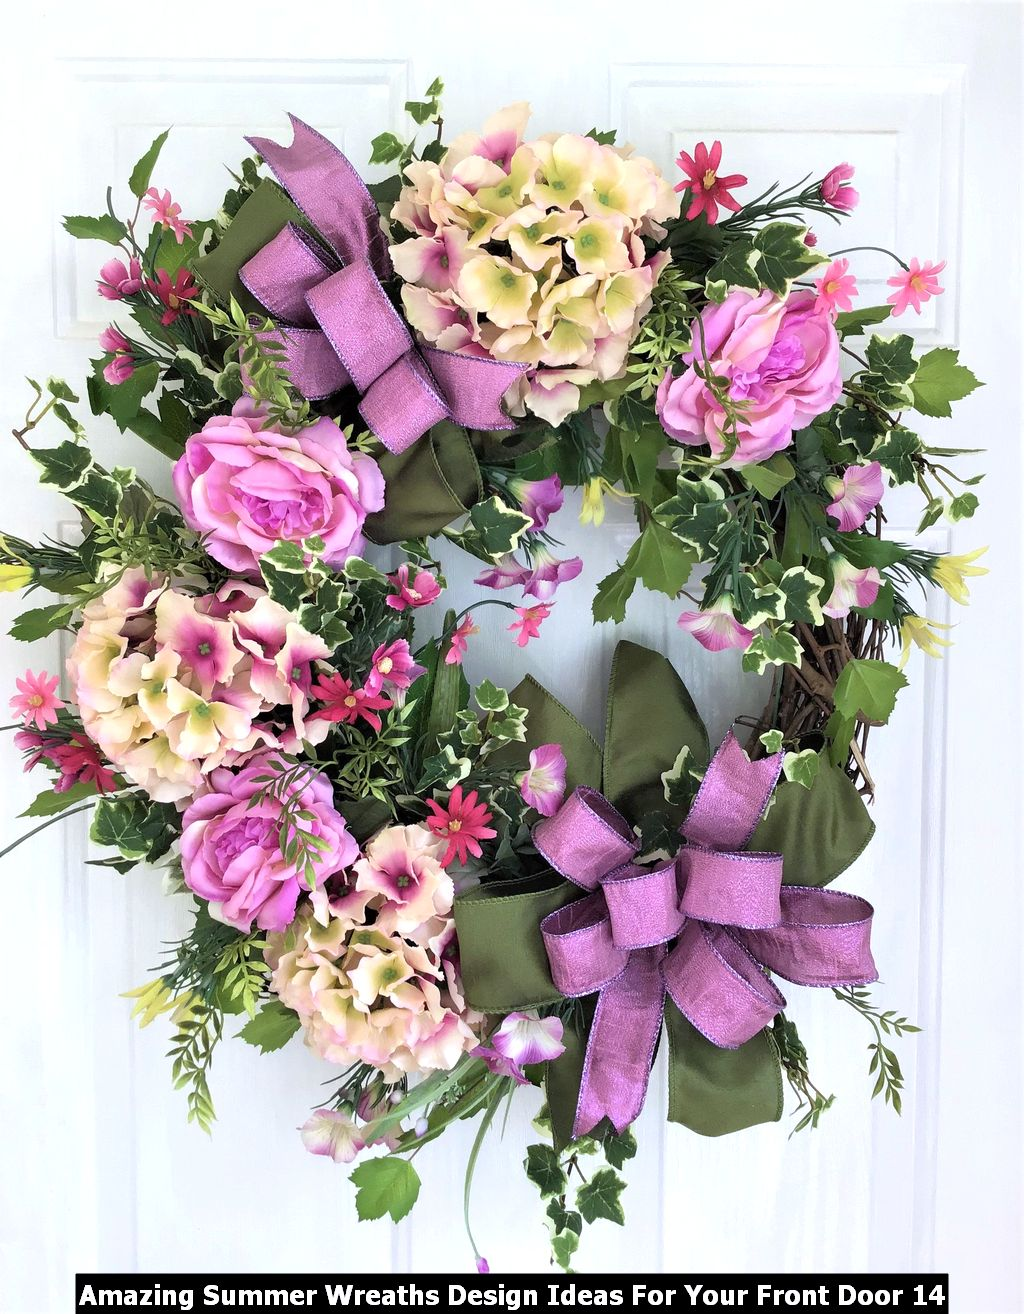 Amazing Summer Wreaths Design Ideas For Your Front Door 14